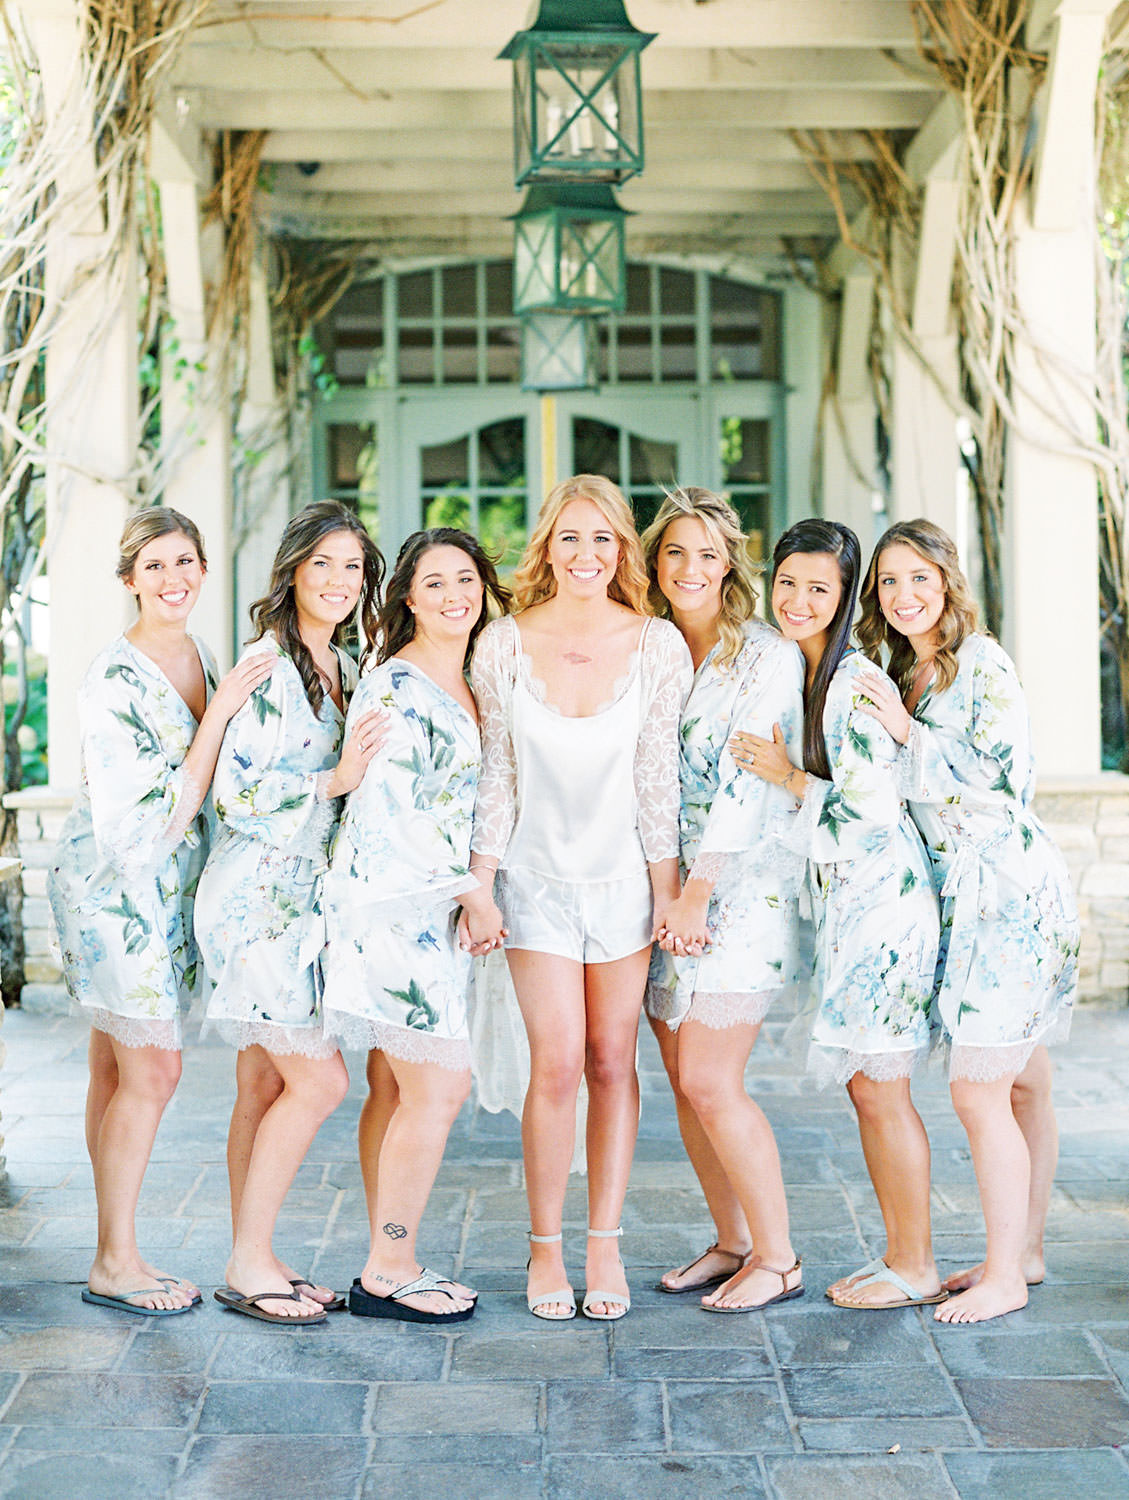 Bride in white pajamas with brides in floral robes posing before the wedding shot on film, Del Mar Country Club Wedding by Cavin Elizabeth Photography